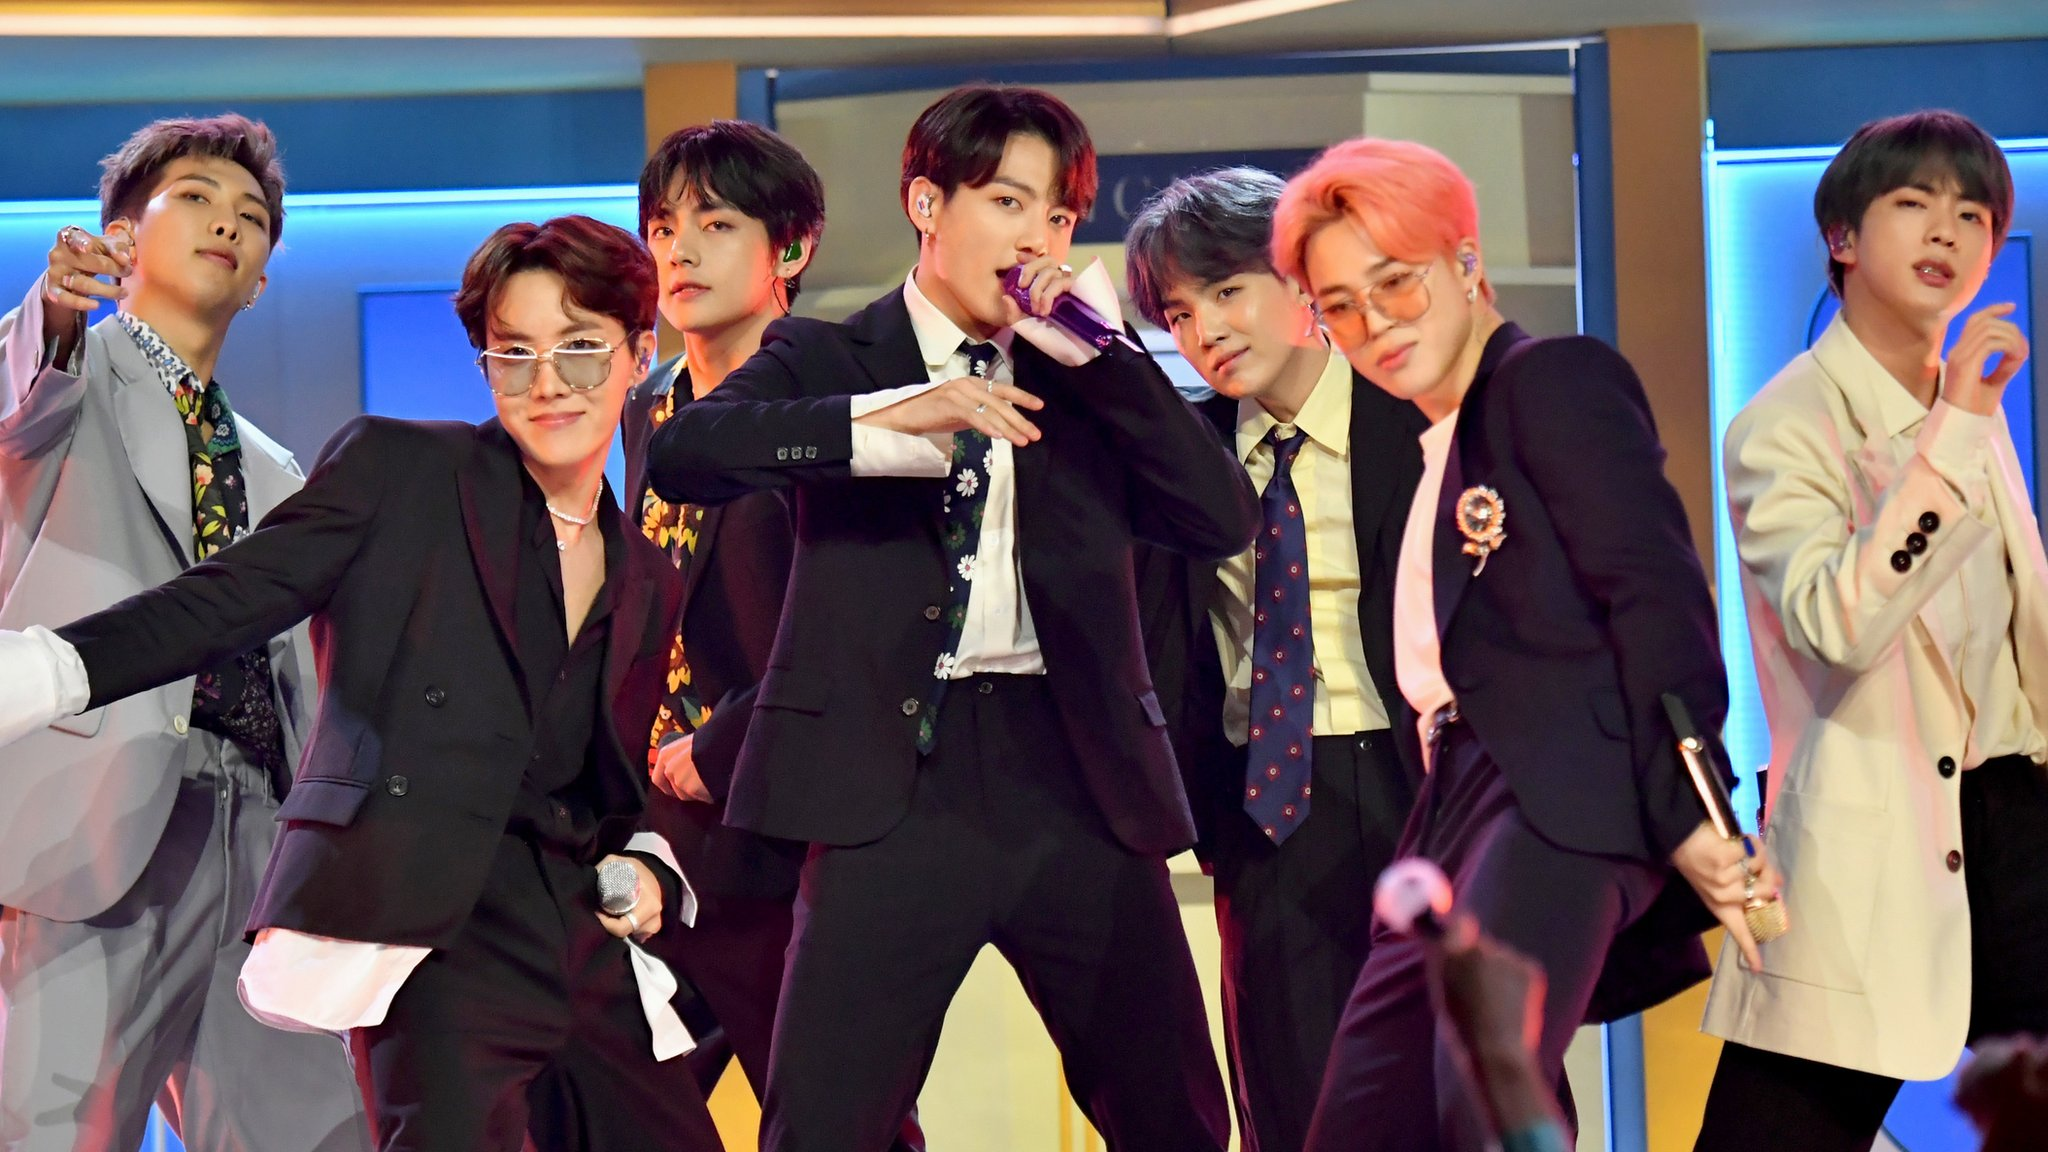 Bts Bring The Soul The Movie Released Today Cbbc Newsround